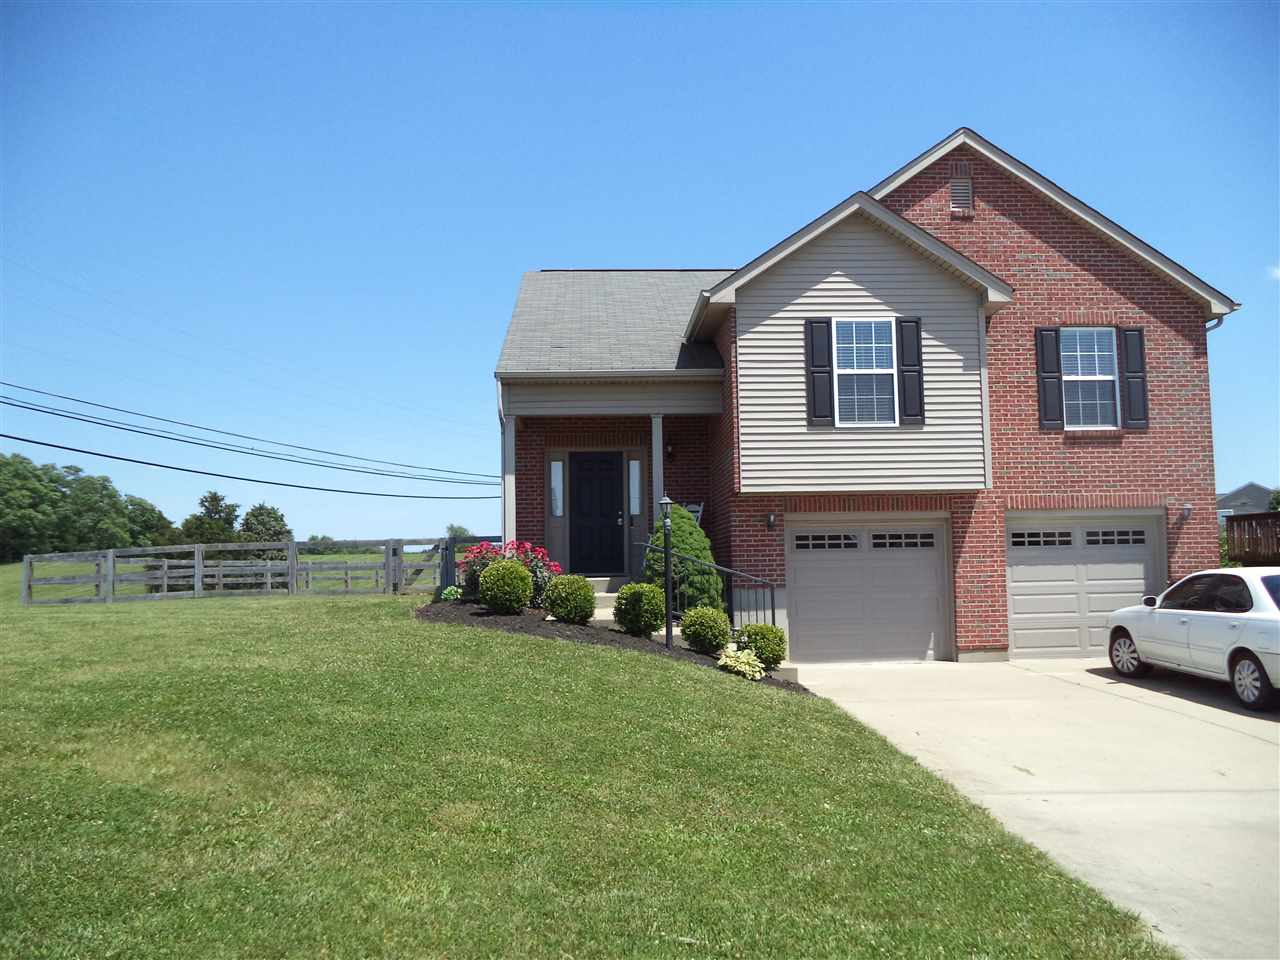 Photo 1 for 6216 Baymiller Burlington, KY 41005